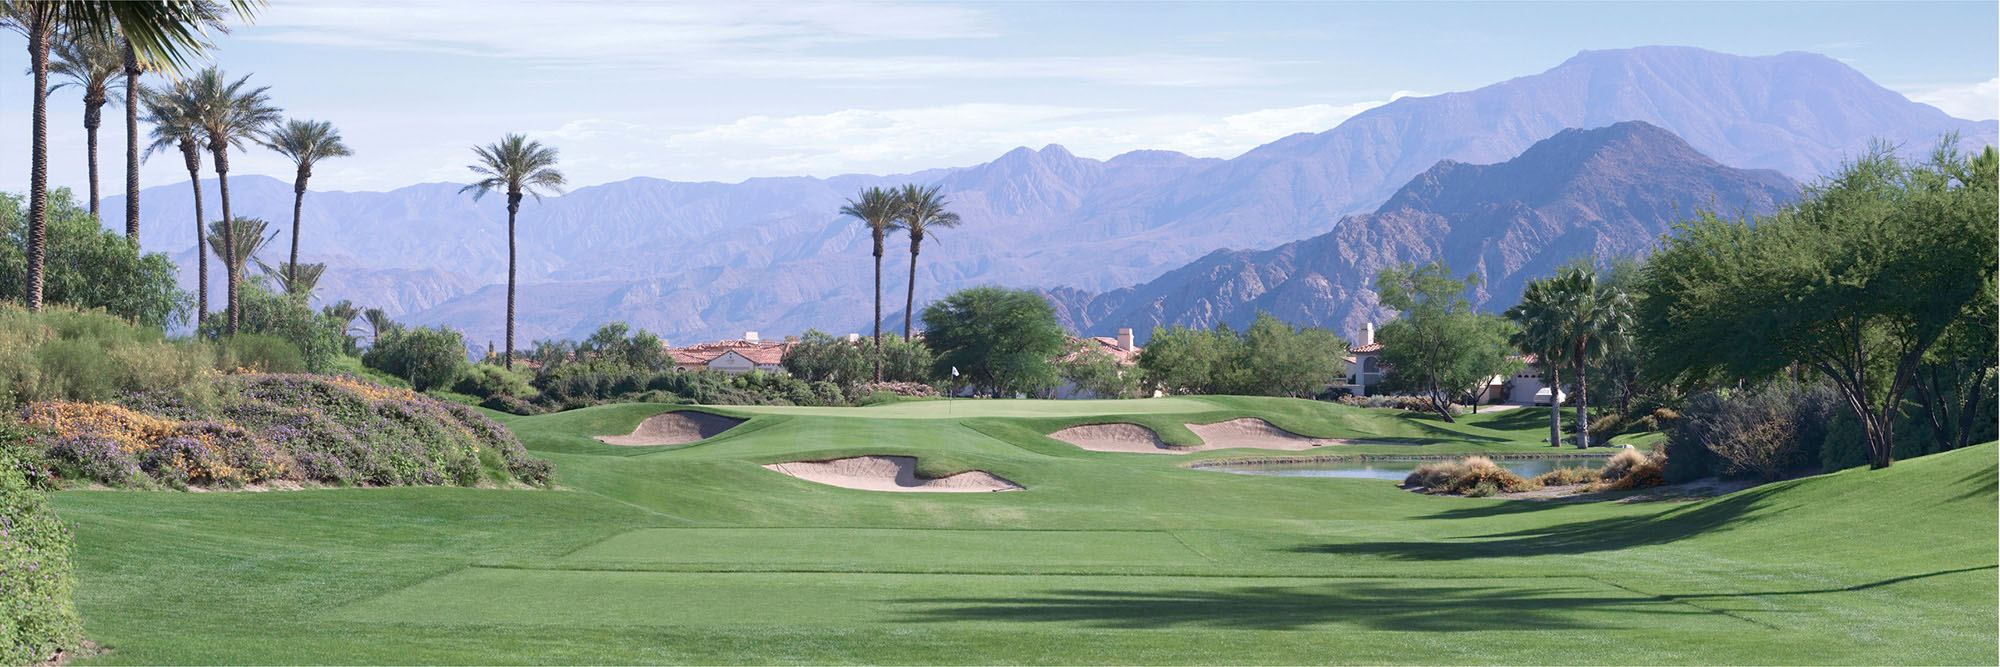 Golf Course Image - Rancho La Quinta Pate No. 3